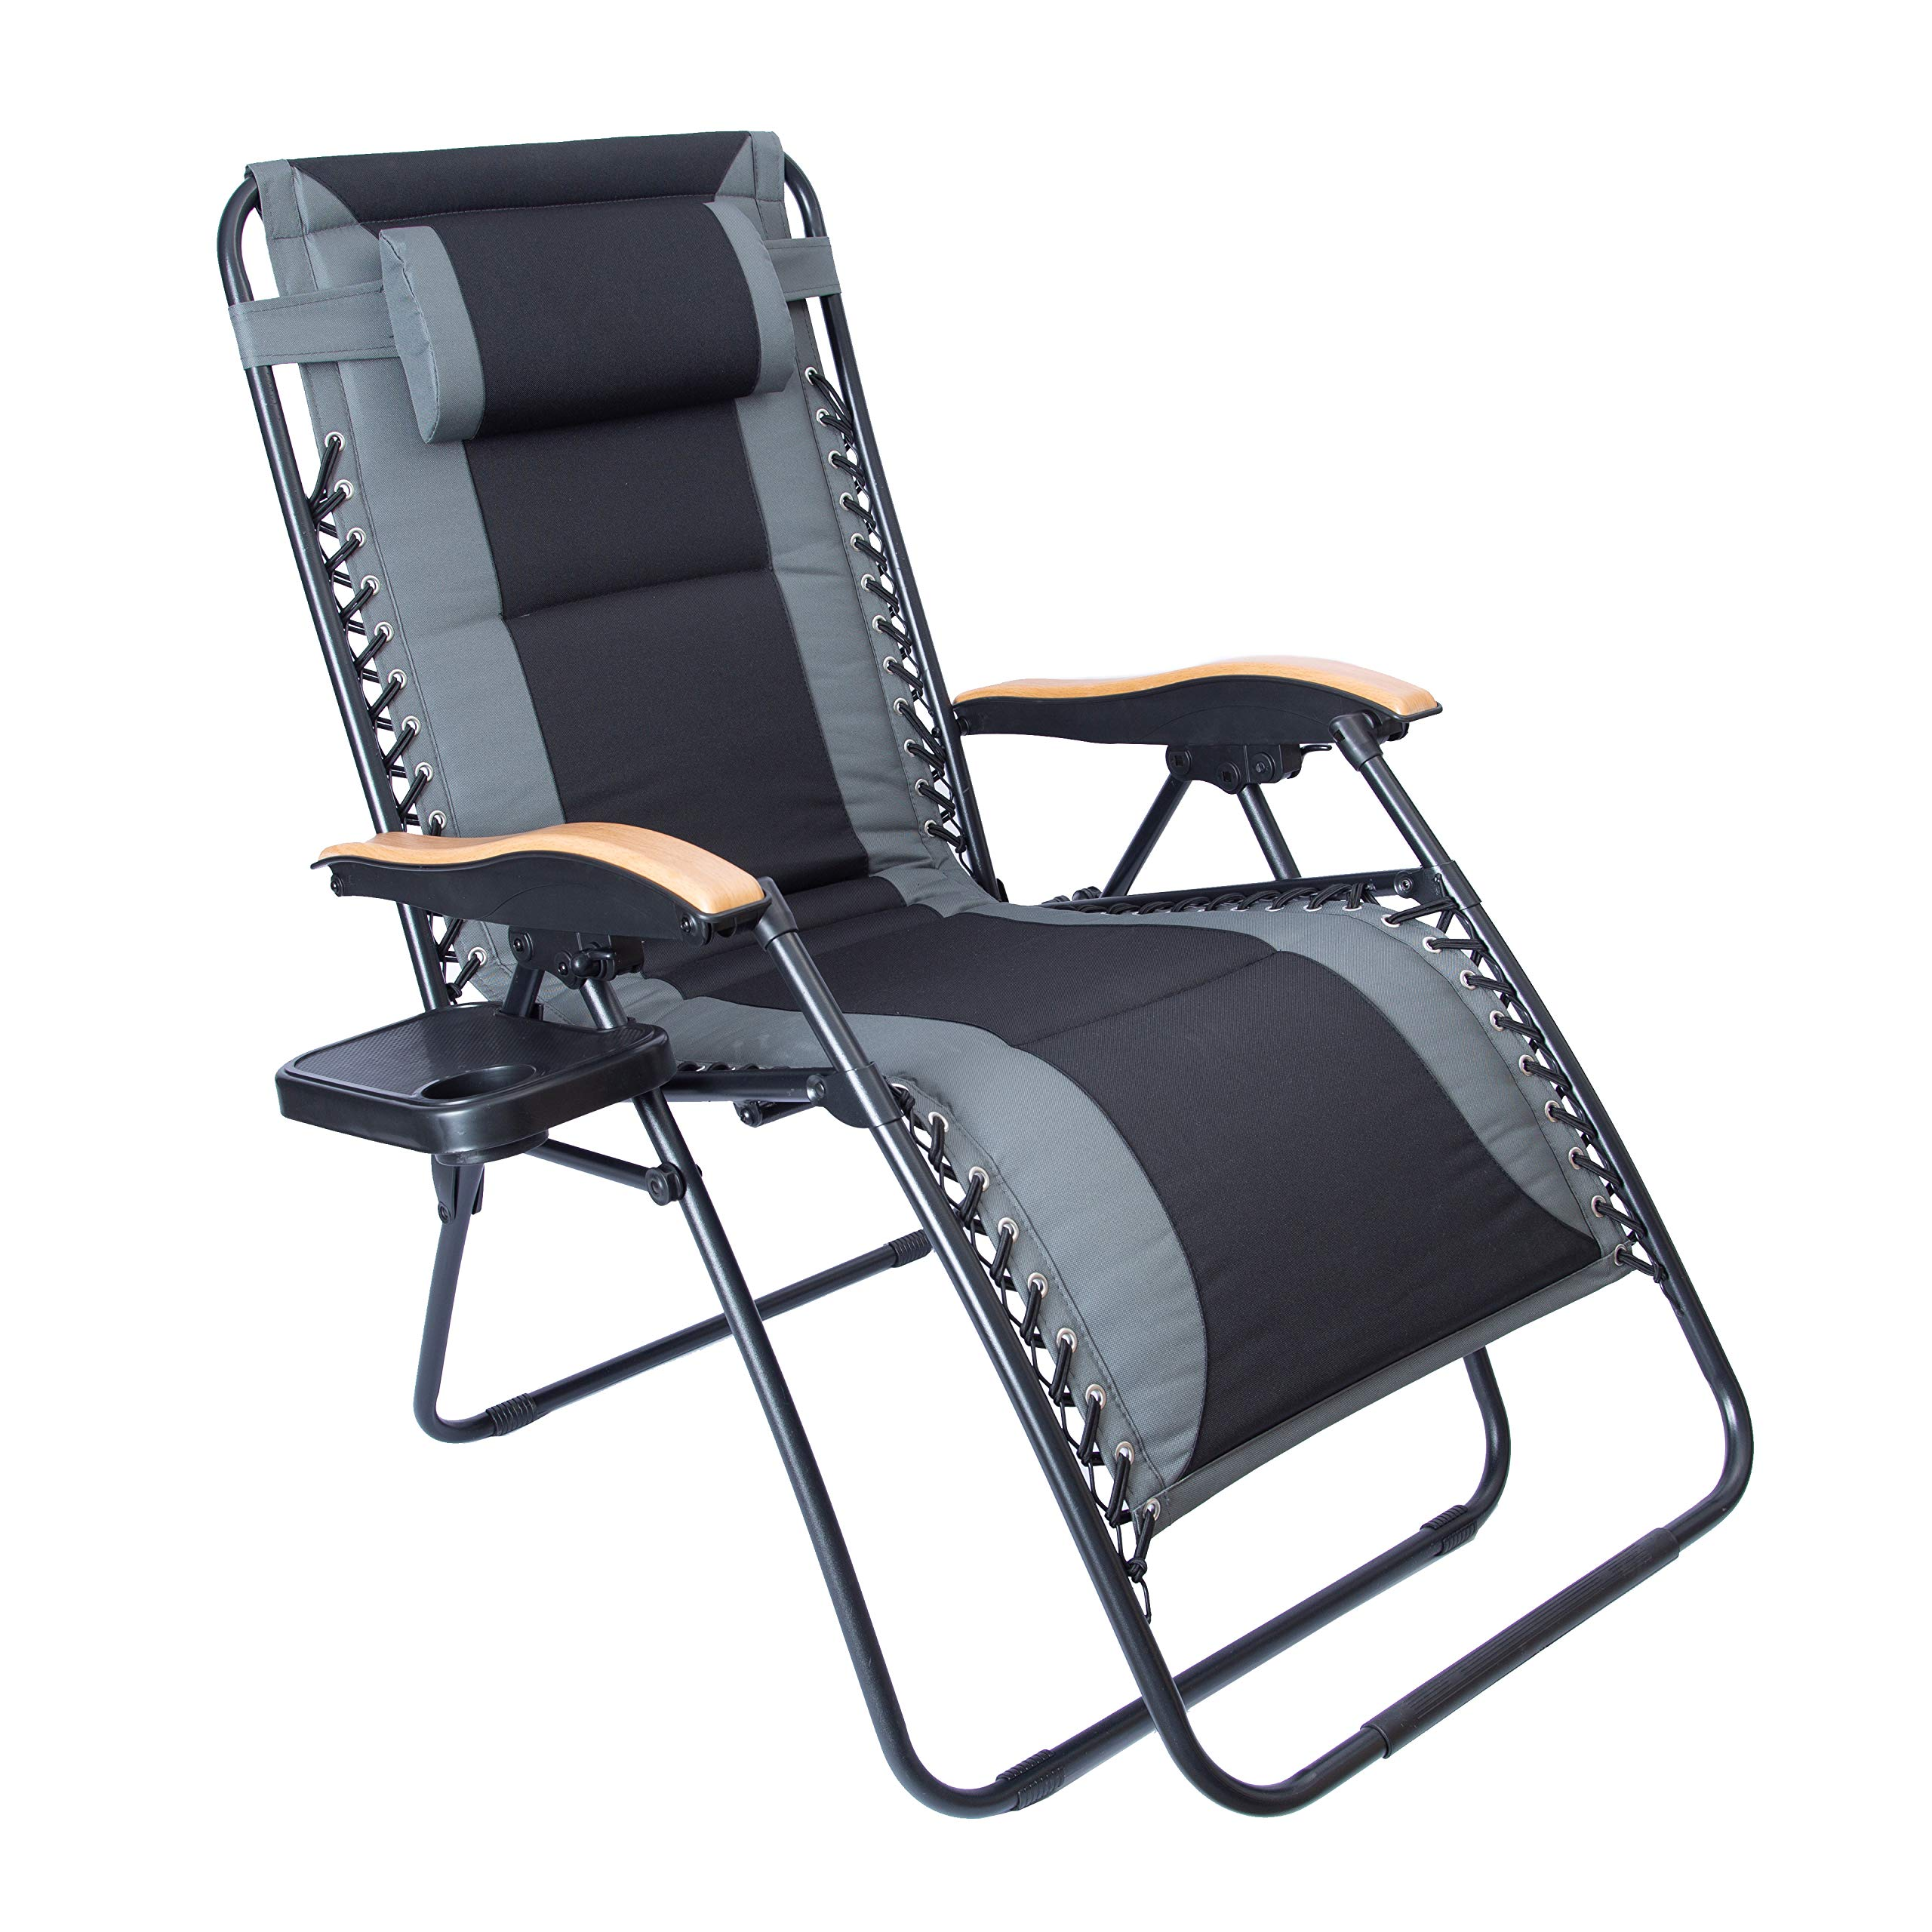 LUCKYBERRY Oversize XL Padded Zero Gravity Lounge Chair Grey Wider Armrest Adjustable Recliner with Cup Holder, Support 350 LBS, Blue